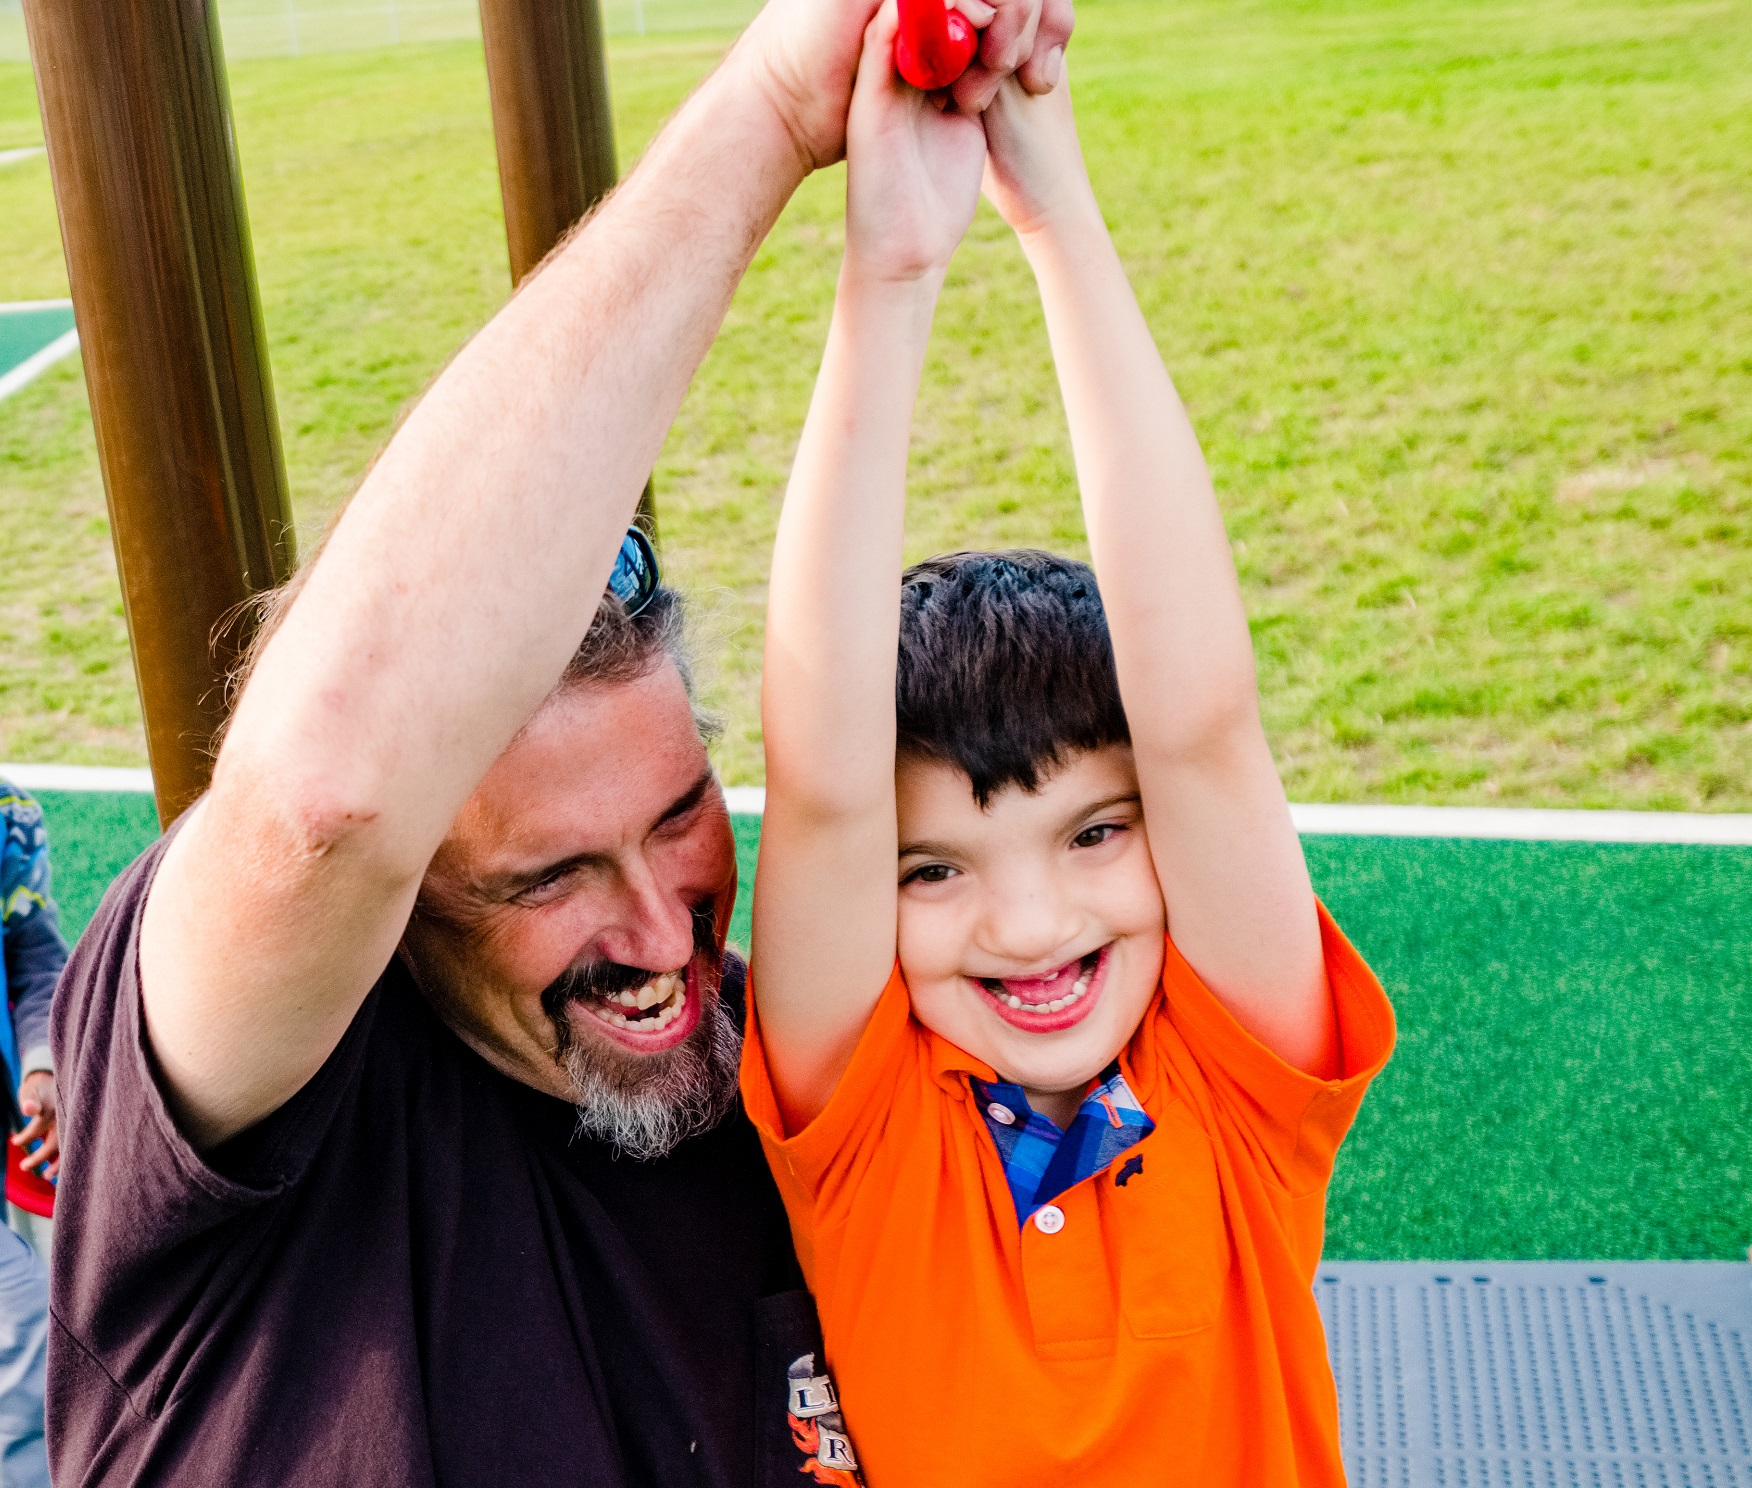 Child and father smiling on playground zipline